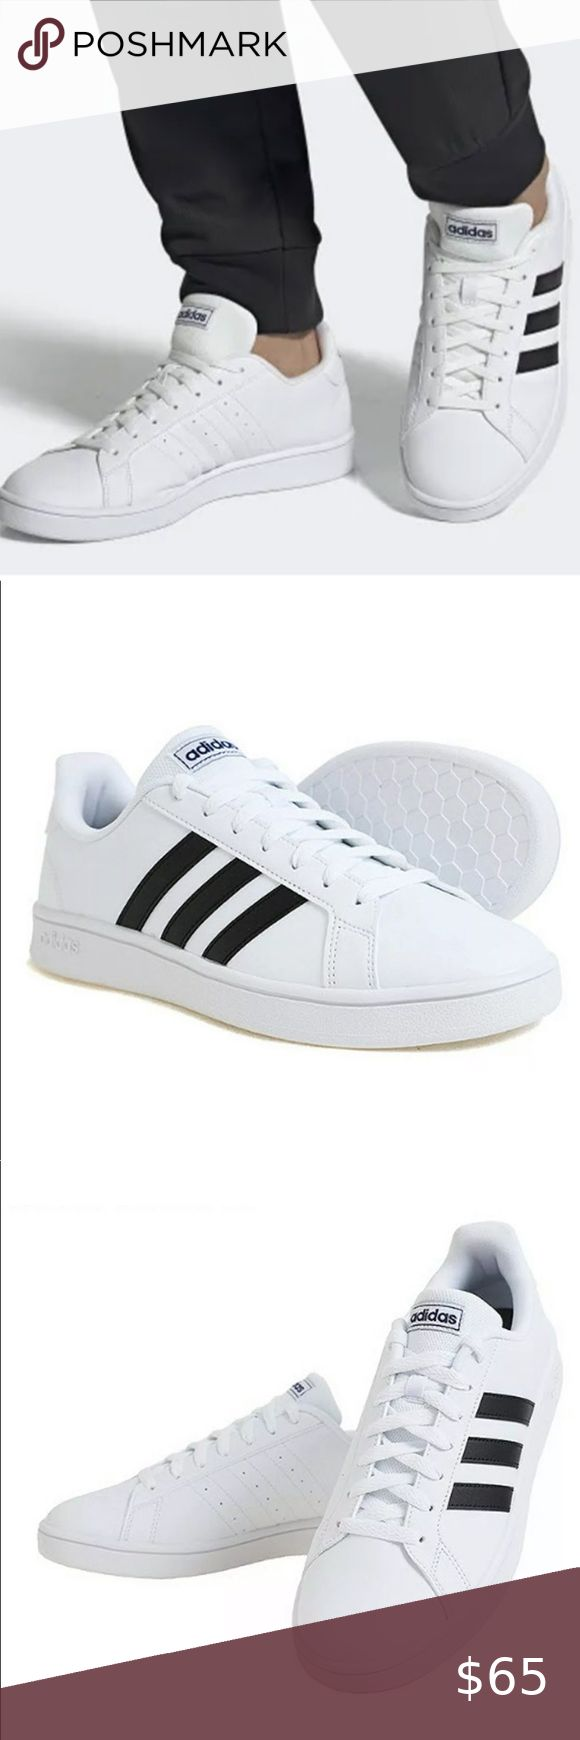 Adidas Men Grand Court Base Shoes White Sneakers Adidas Men Grand Court Base Shoes Running White Sneakers Cas In 2020 Shoes Sneakers Adidas Adidas Men Casual Sneakers